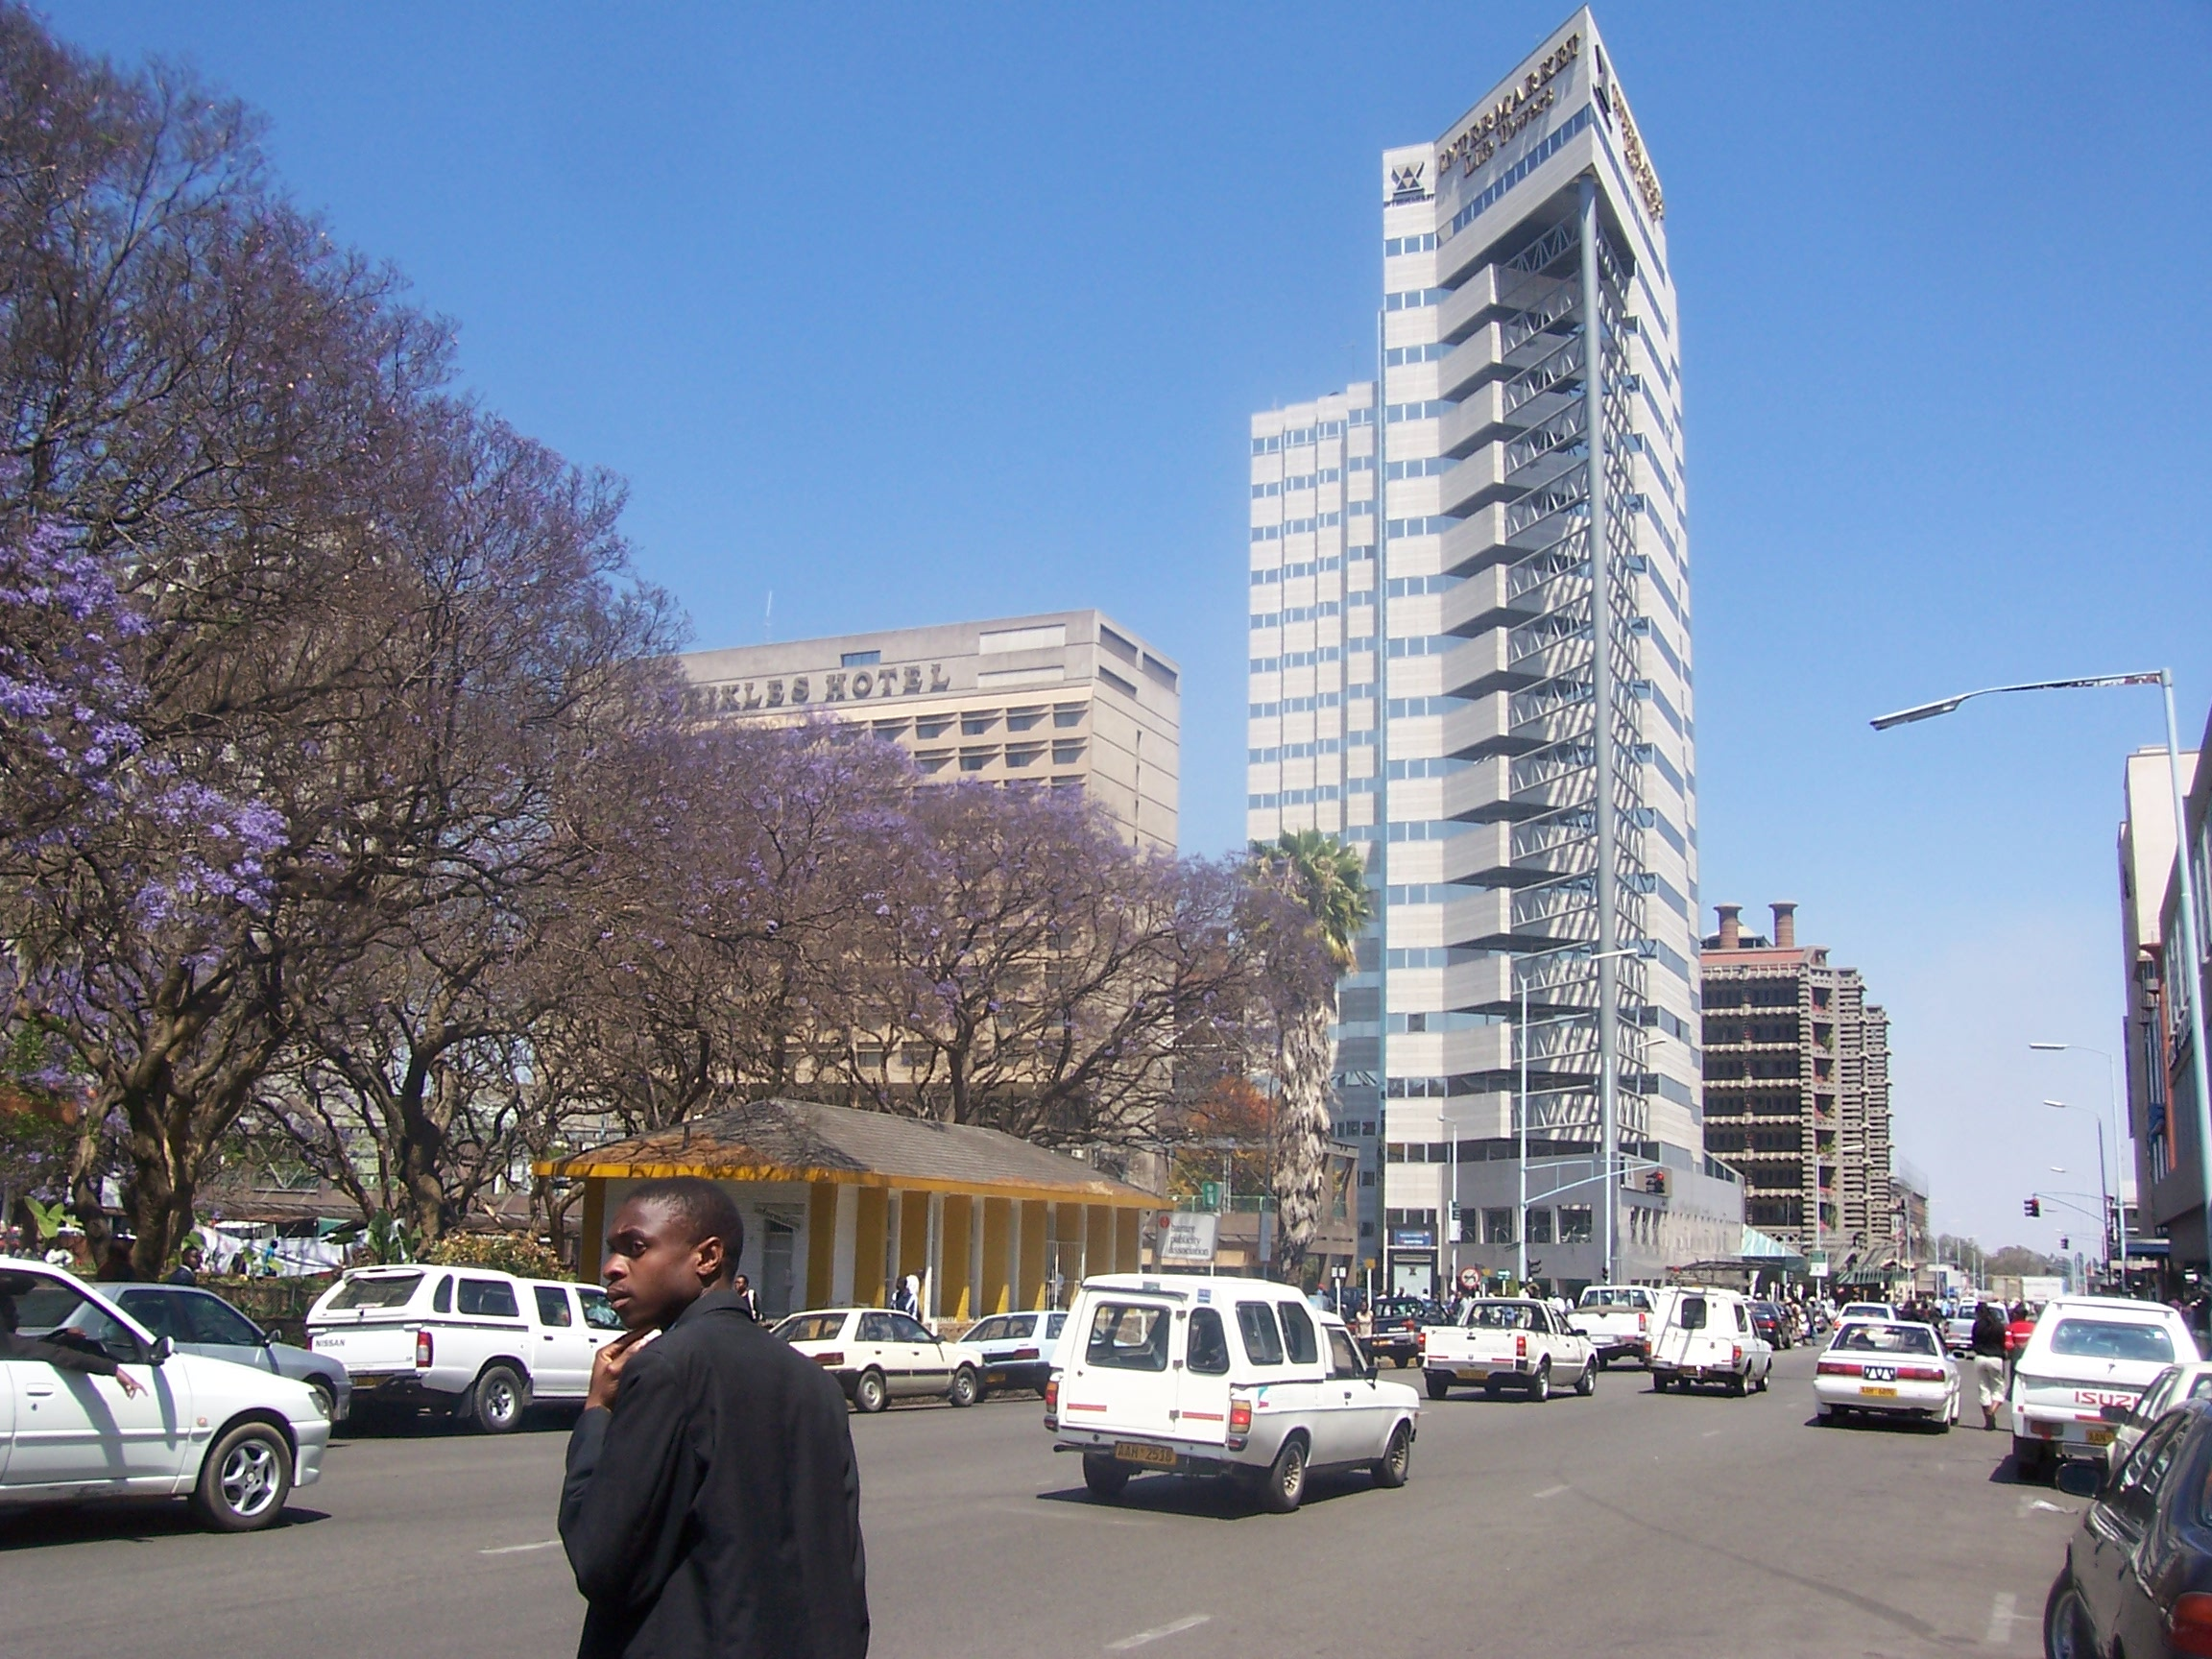 Harare secondst